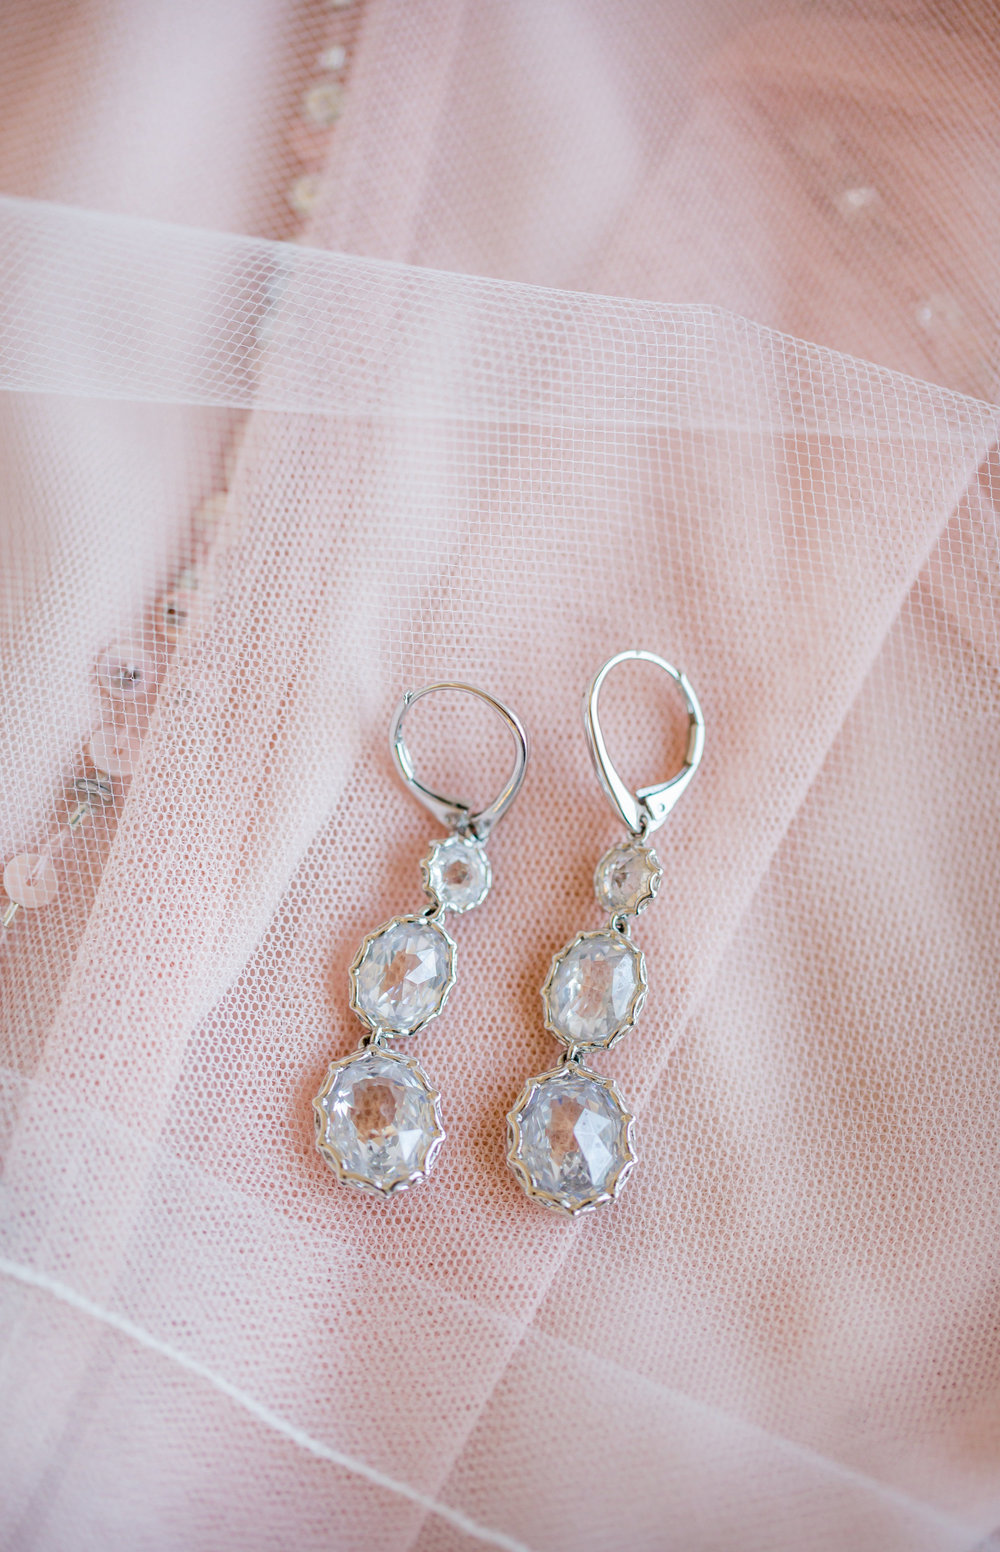 3 tiered bridal earrings - - A Diamond Hotel Penthouse Wedding by Katelyn Owens Photography